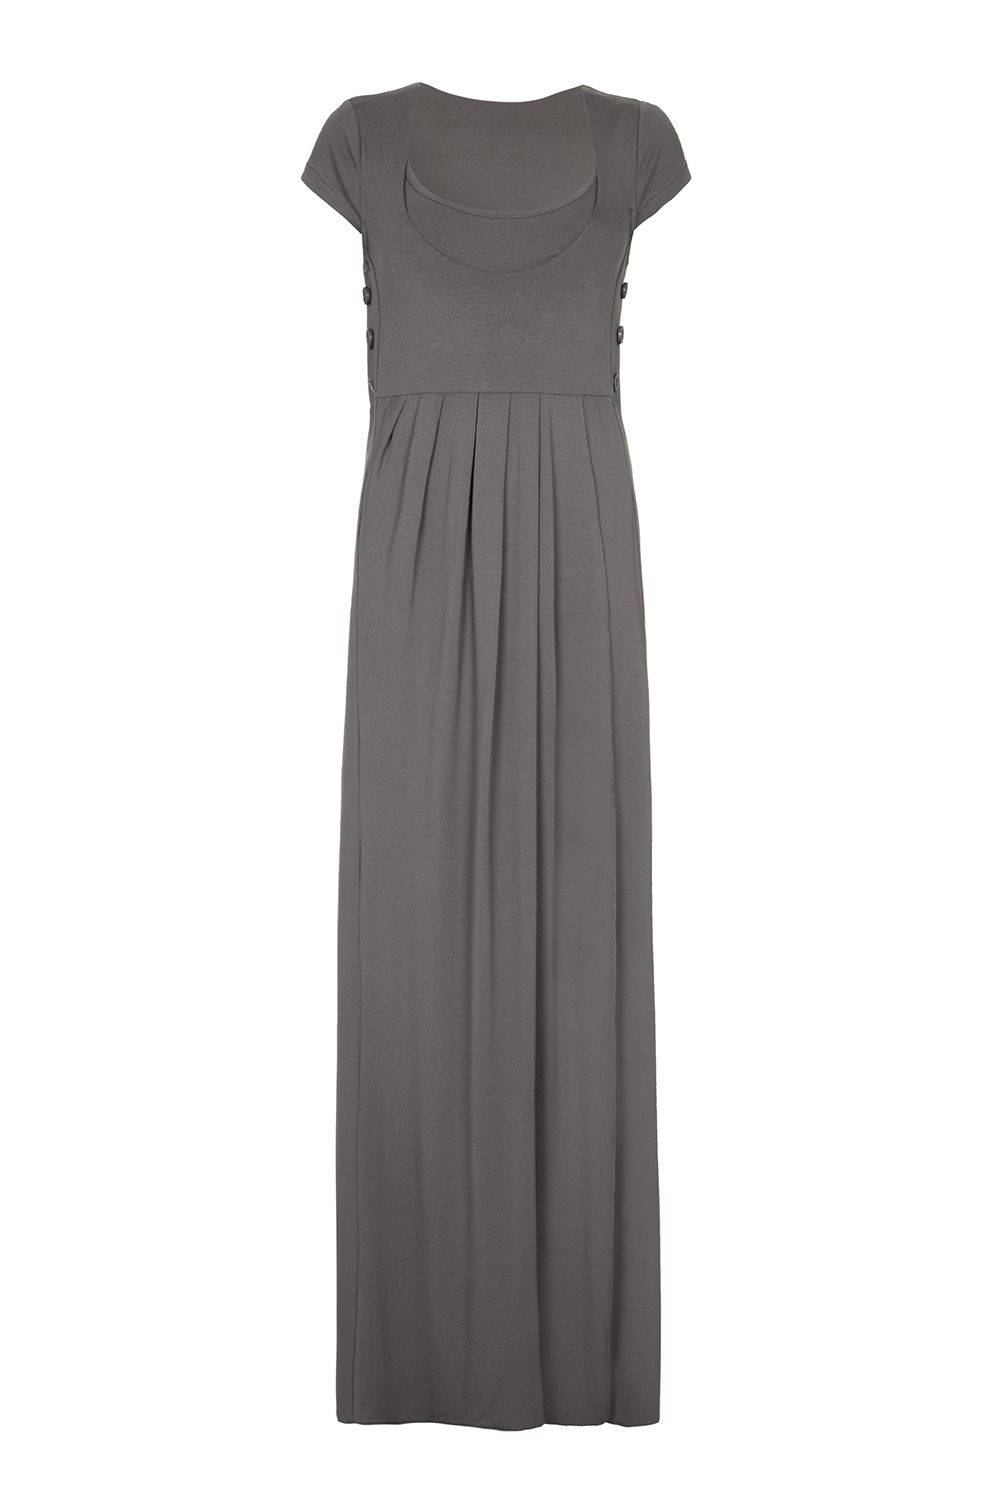 Bibee Maternity Drape front evening dress, Grey